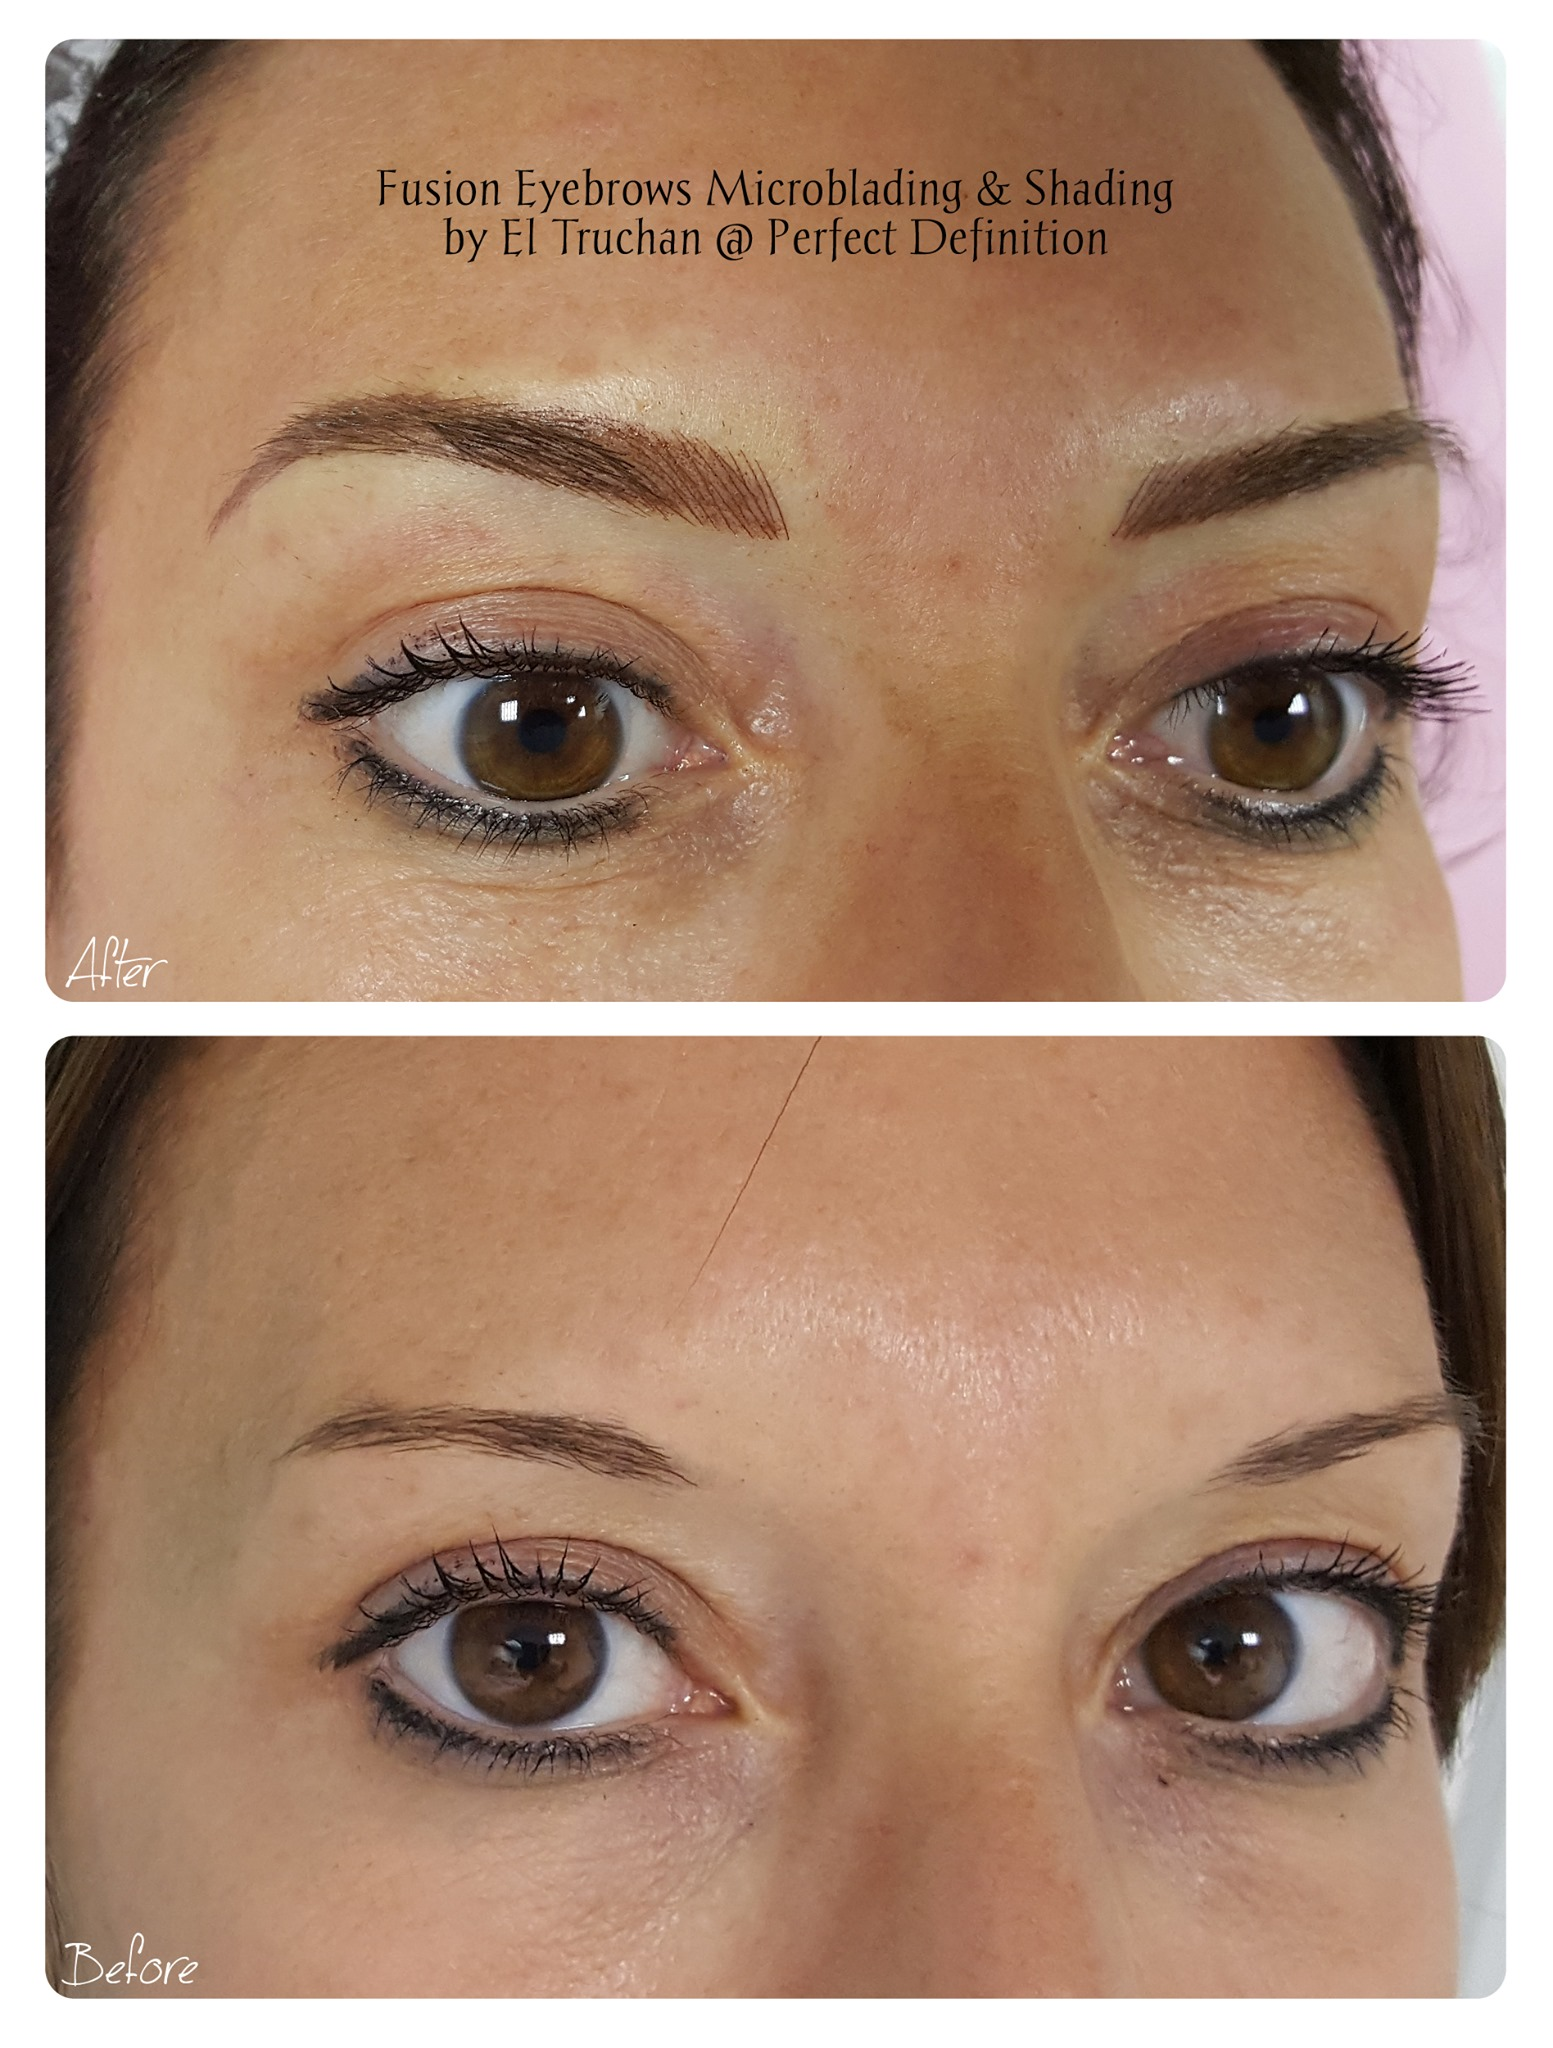 Fusion Eyebrows Microblading & Shading b